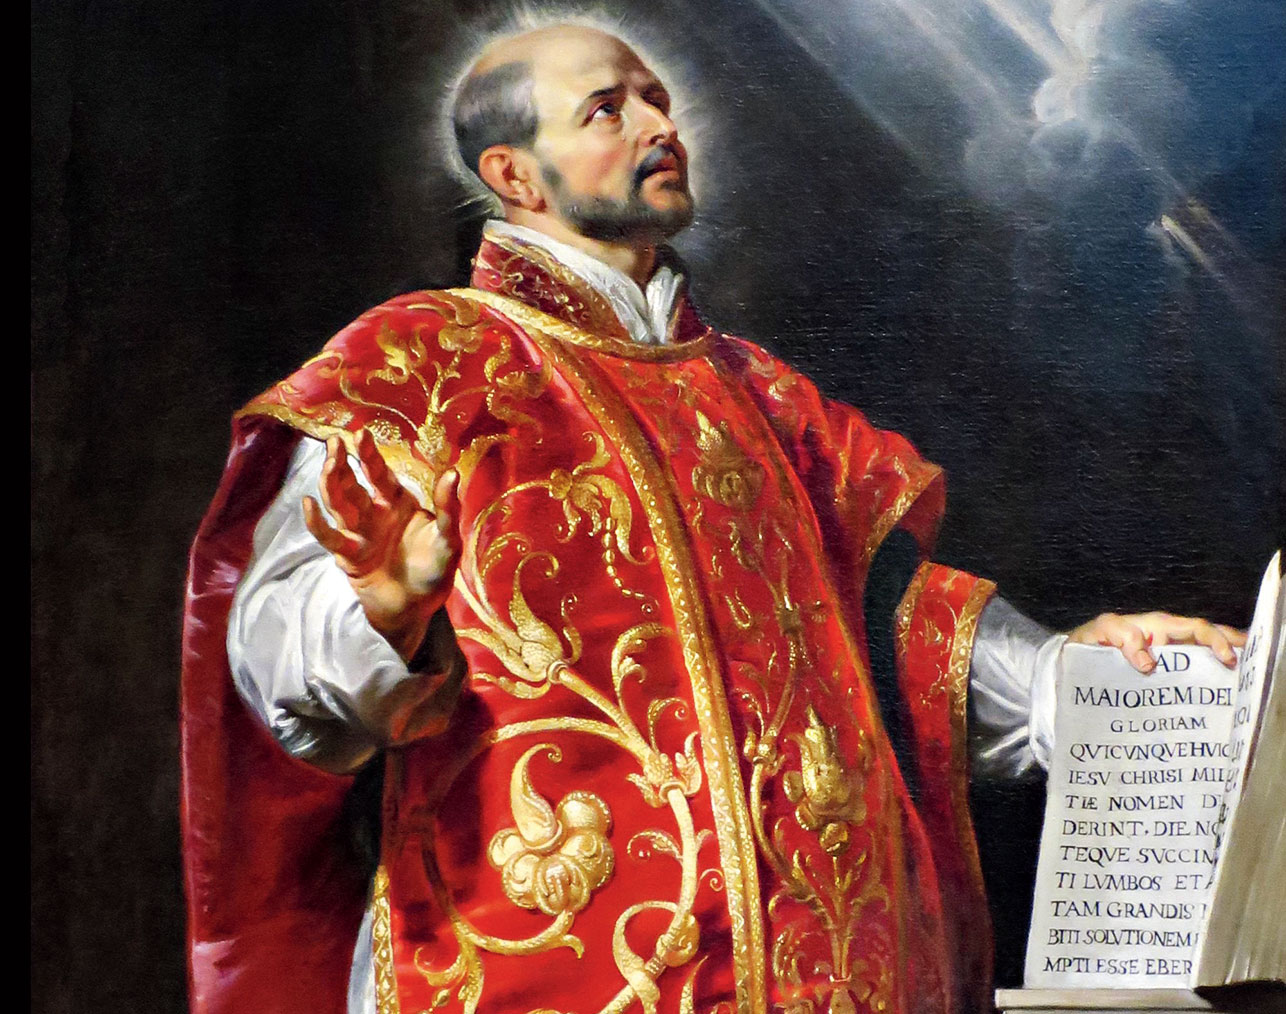 Ignatius was a remarkable character who formed a precious milestone in the history of the 16th century. In 1542 he sent his greatest son, Francis Xavier, to India. The latter worked in India for 10 years, from 1542 to 1552, called the Xaverian decade. July 31 marks the feast of St Ignatius